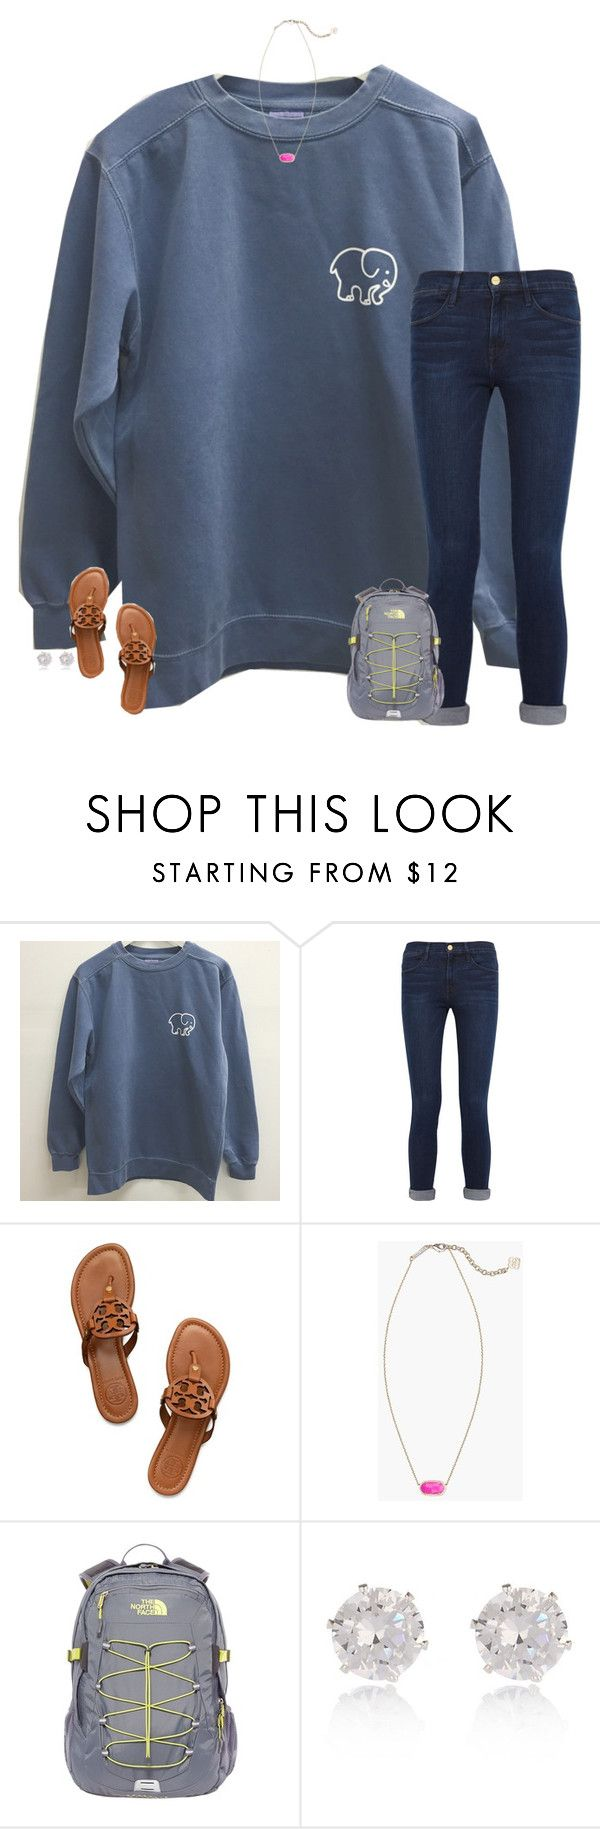 """made it to Houston!!"" by secfashion13 ❤ liked on Polyvore featuring Frame Denim, Tory Burch, Kendra Scott, The North Face, River Island, women's clothing, women, female, woman and misses"